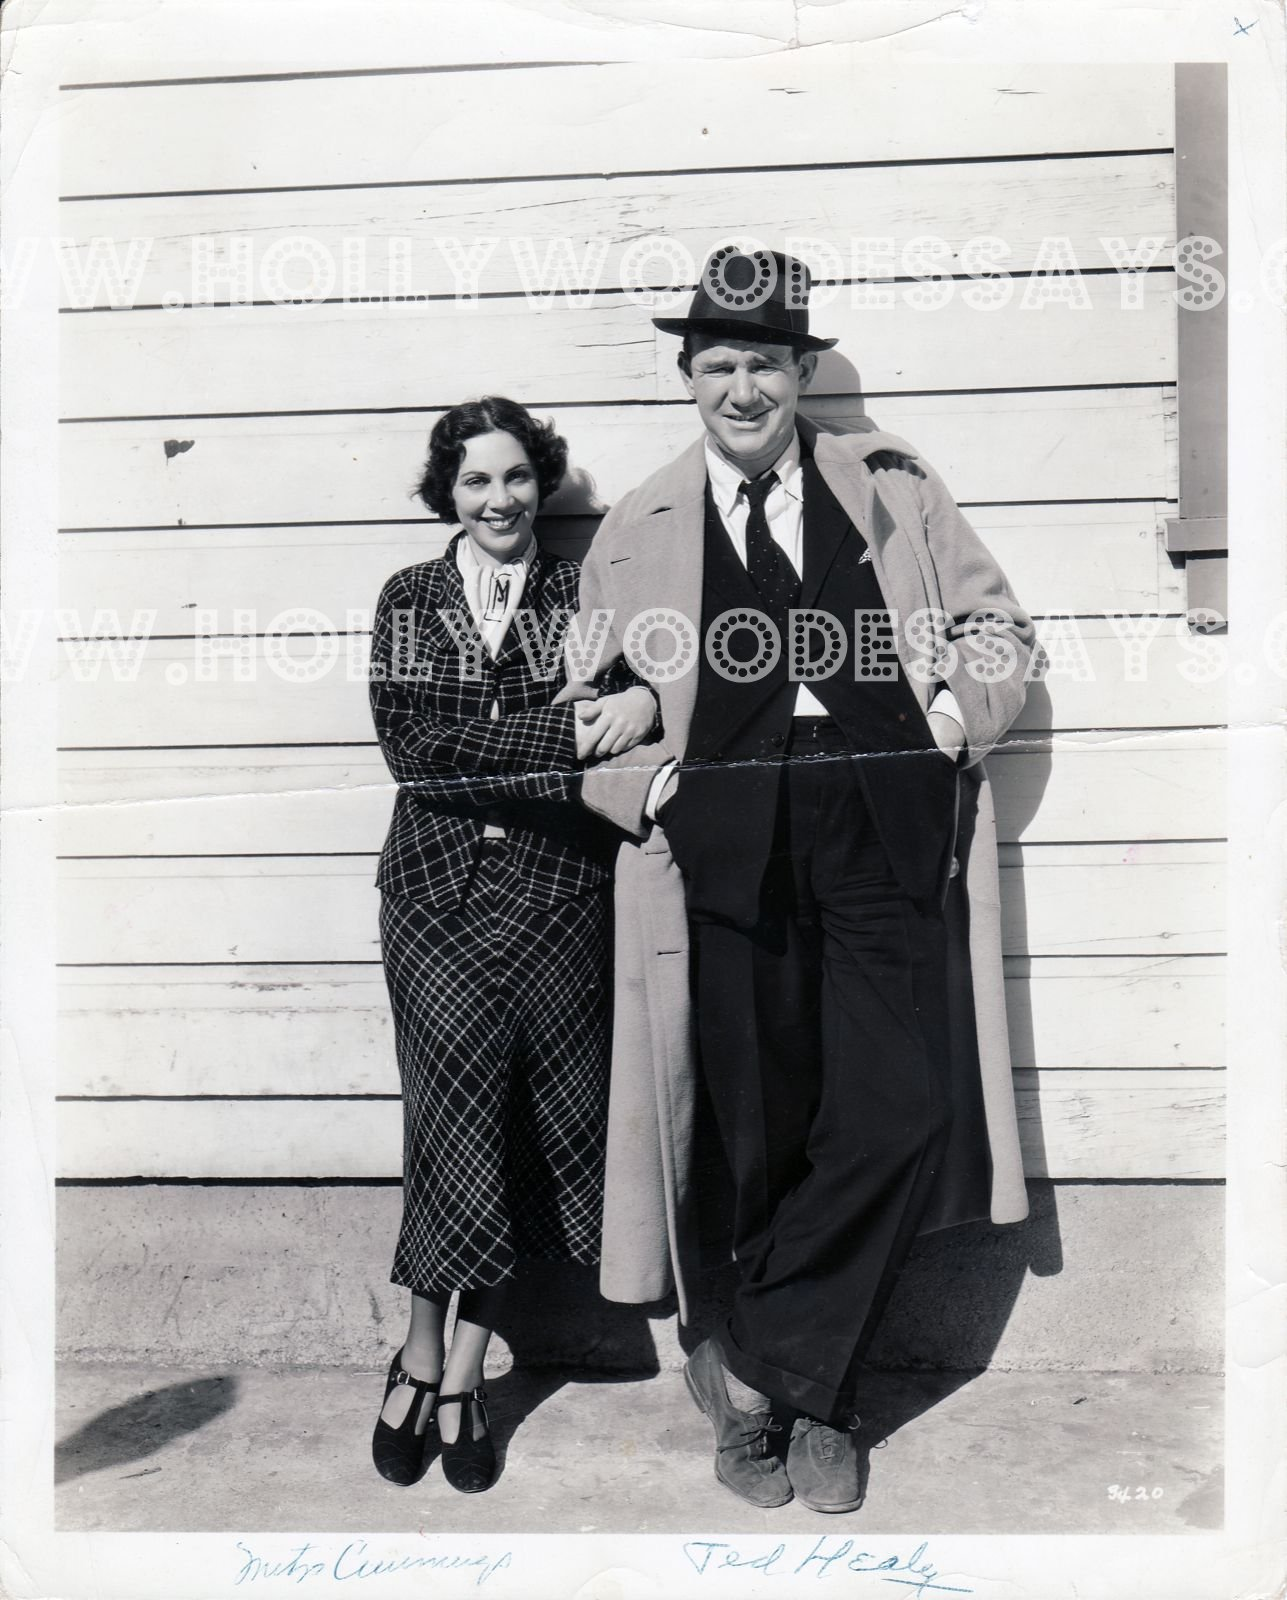 Mitzi with Ted Healy